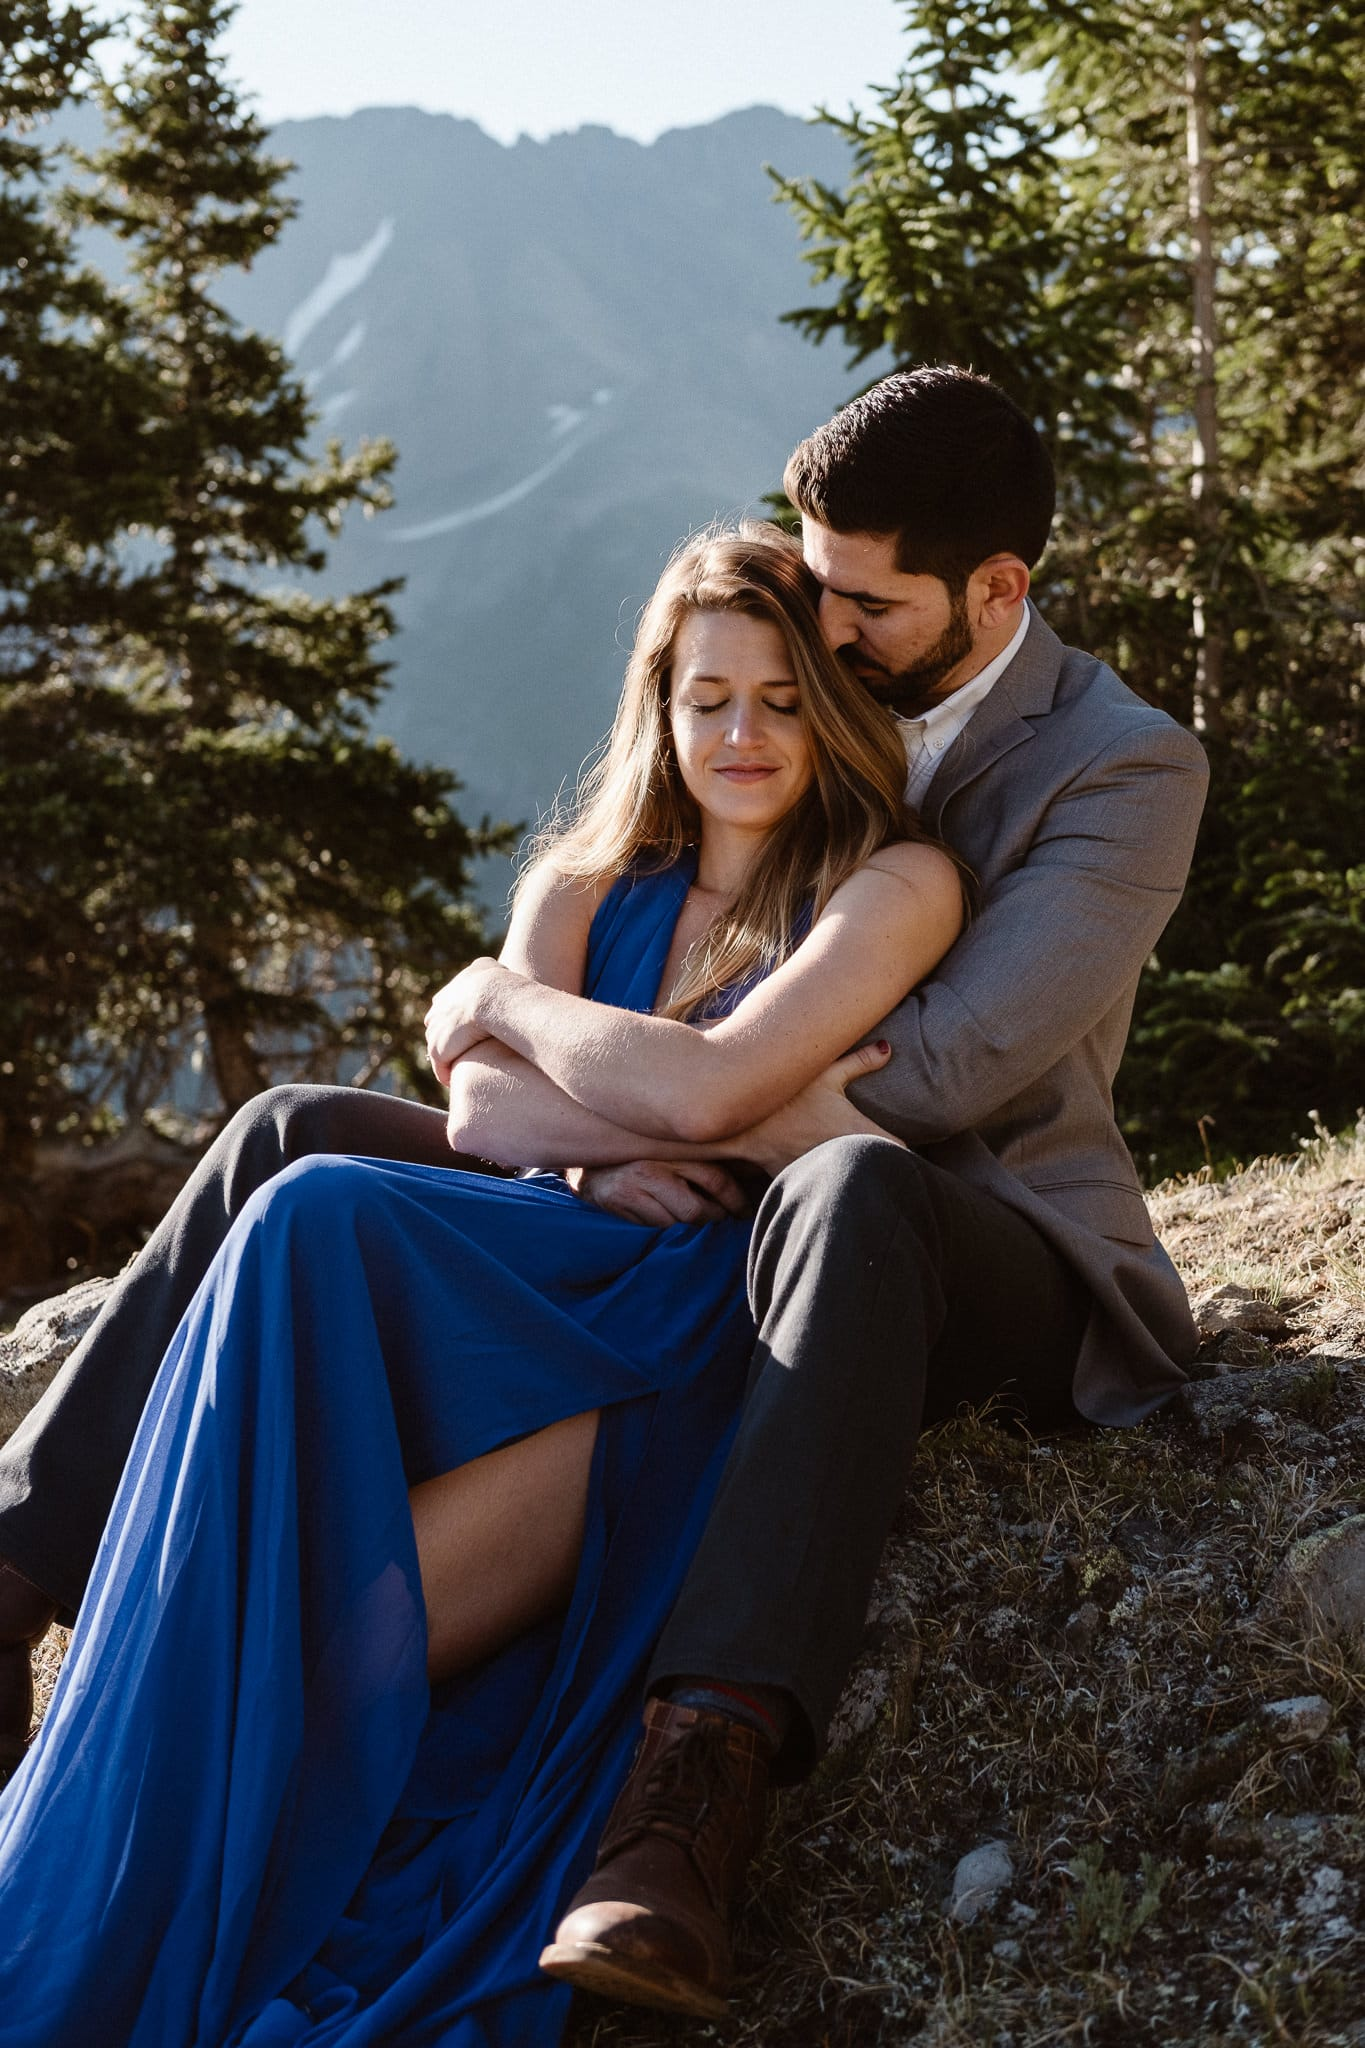 Colorado adventure engagement photography, Loveland Pass mountain alpine lake elopement, Summit County wedding photographer